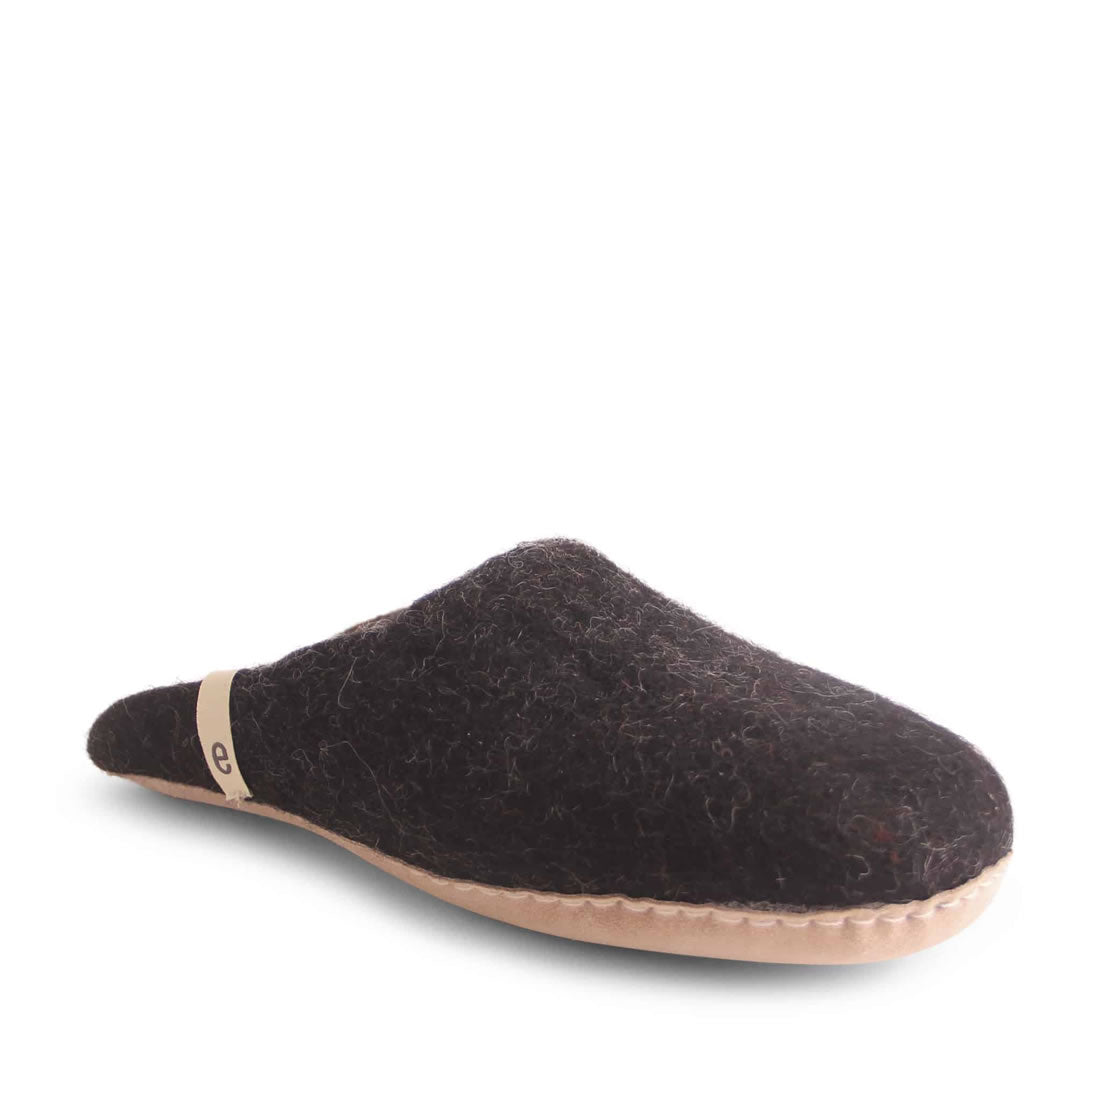 Egos Black Slip on Slipper